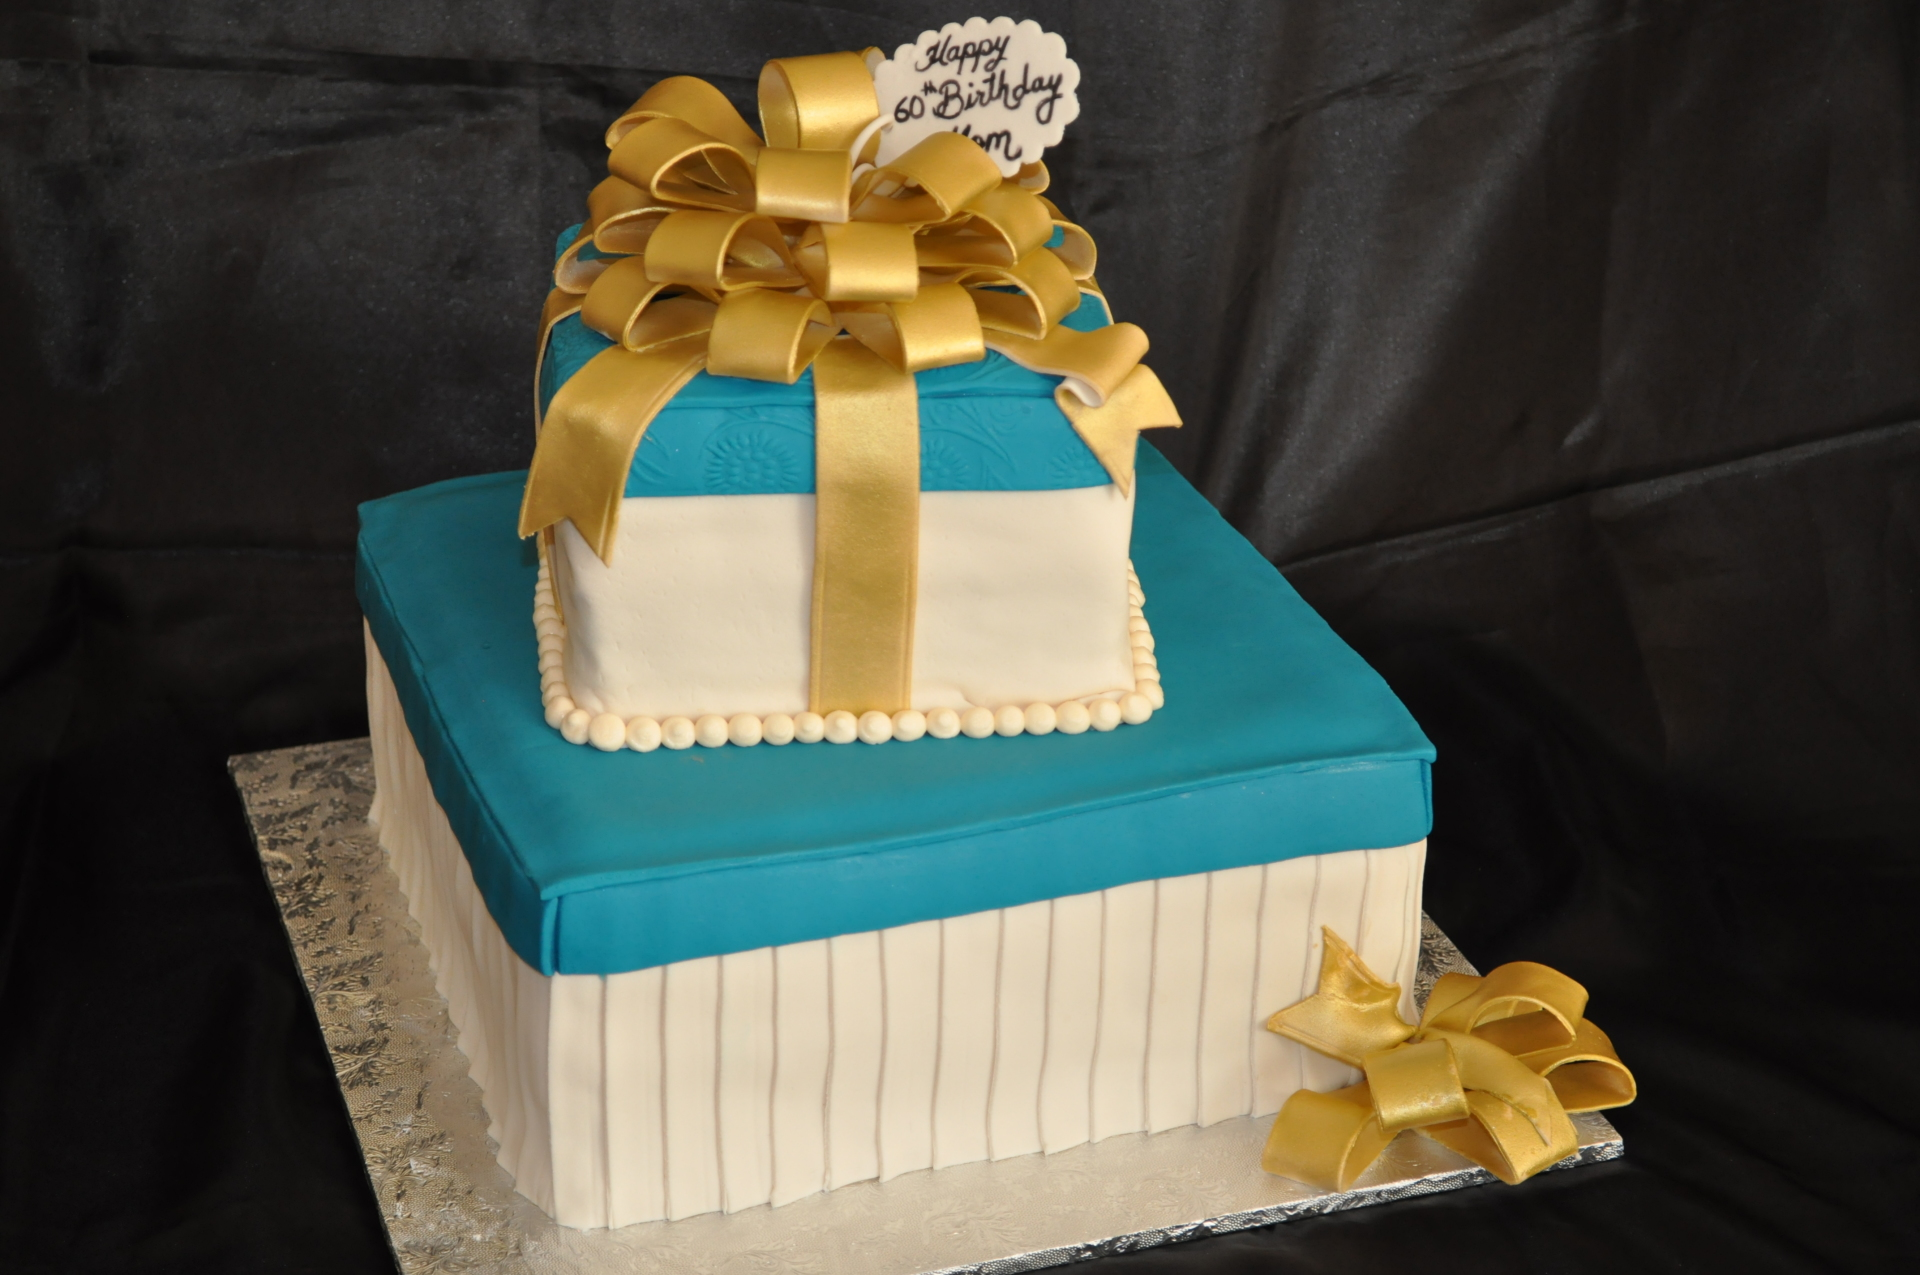 Gift box cake,gold bow cake, stacked gift boxes cake